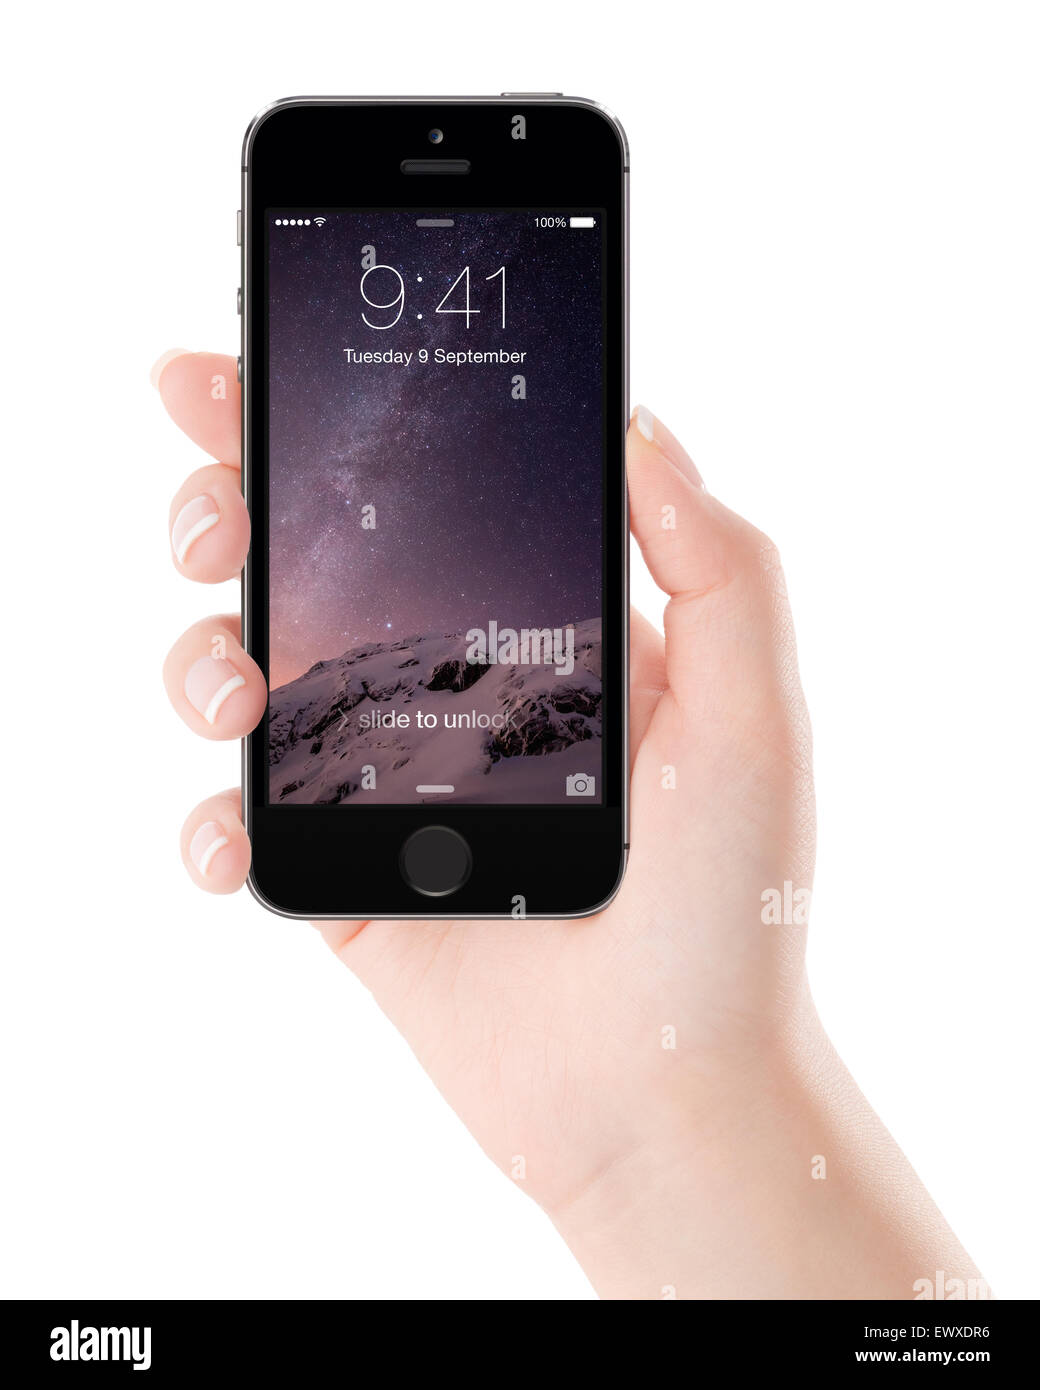 Varna, Bulgaria - December 07, 2013: Female hand holding Apple Space Gray iPhone 5S with lock screen on the display - Stock Image